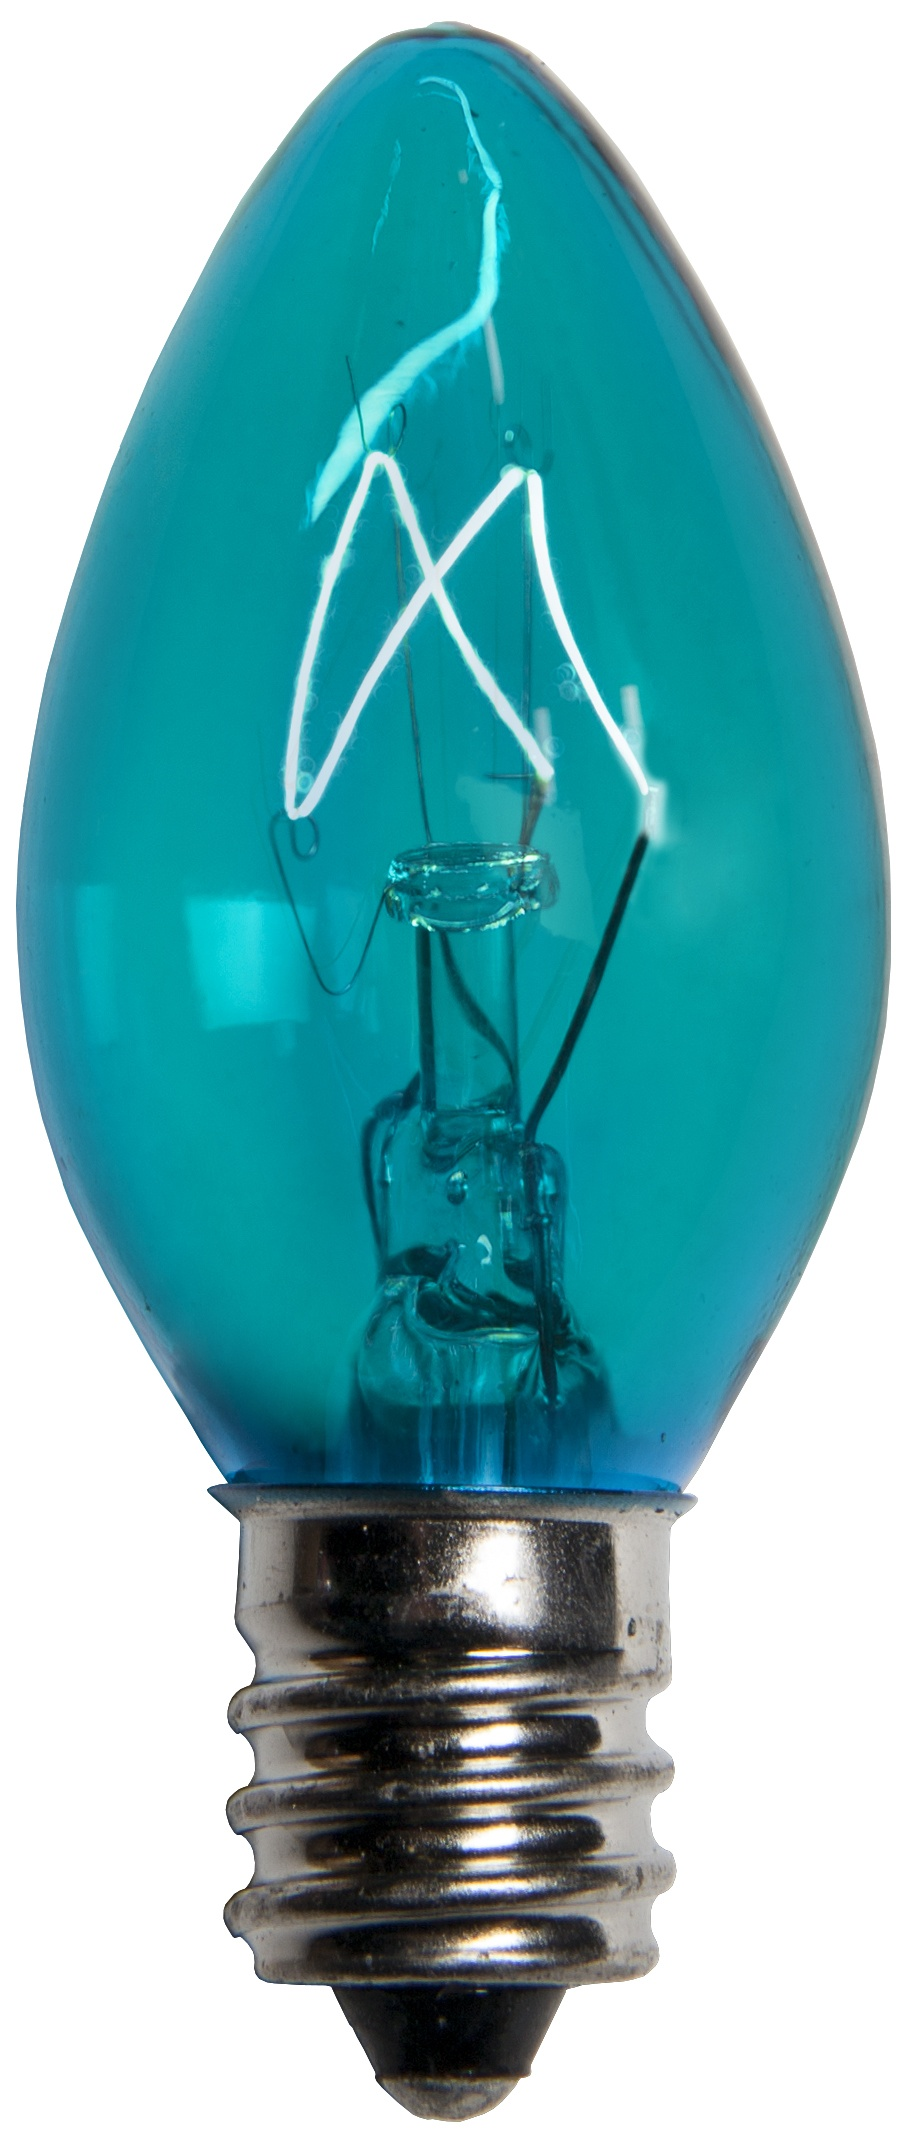 C7 Christmas Light Bulb C7 Teal Christmas Light Bulbs